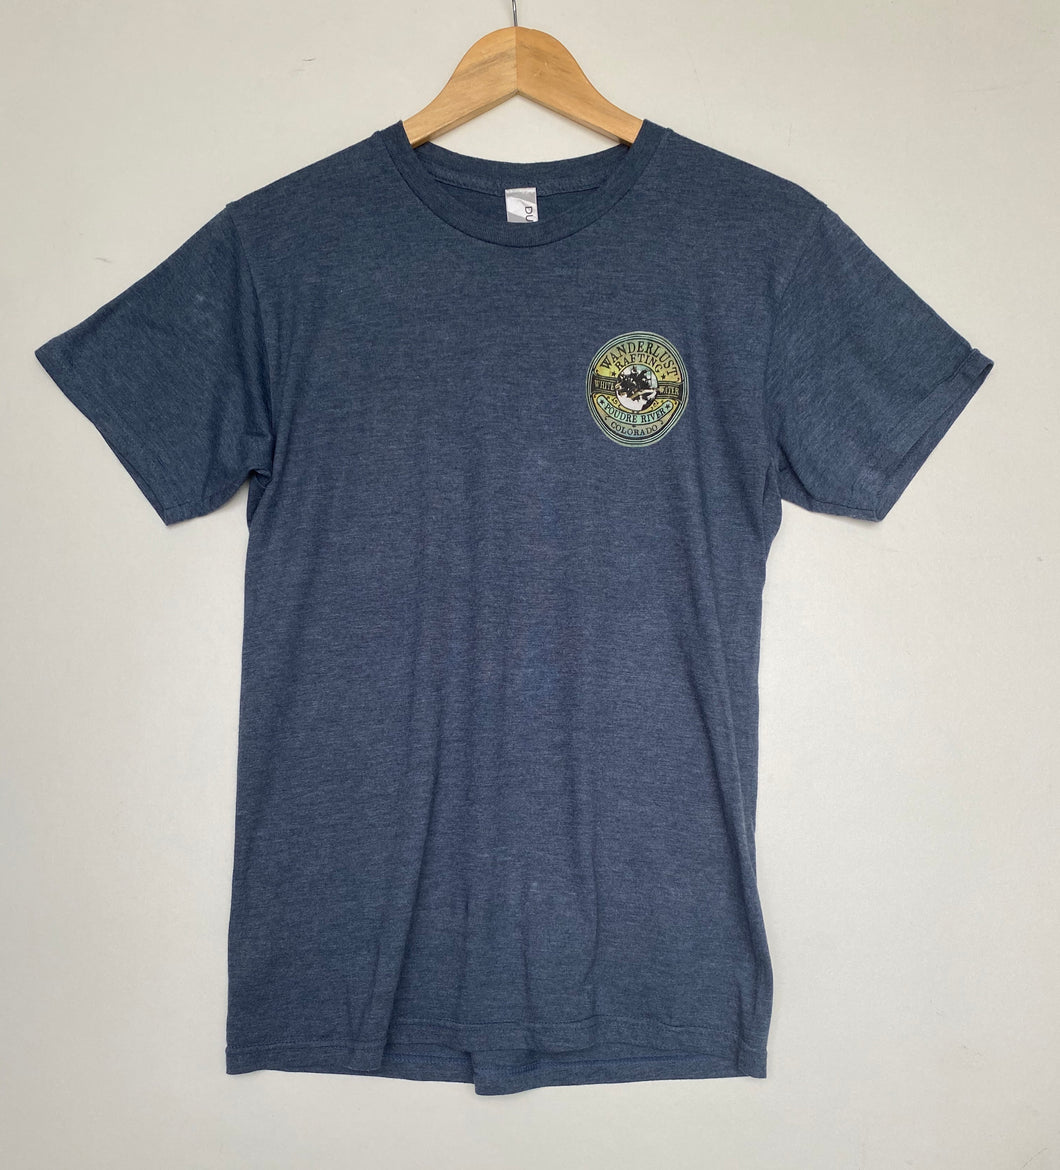 Printed 'Rafting' t-shirt (S)